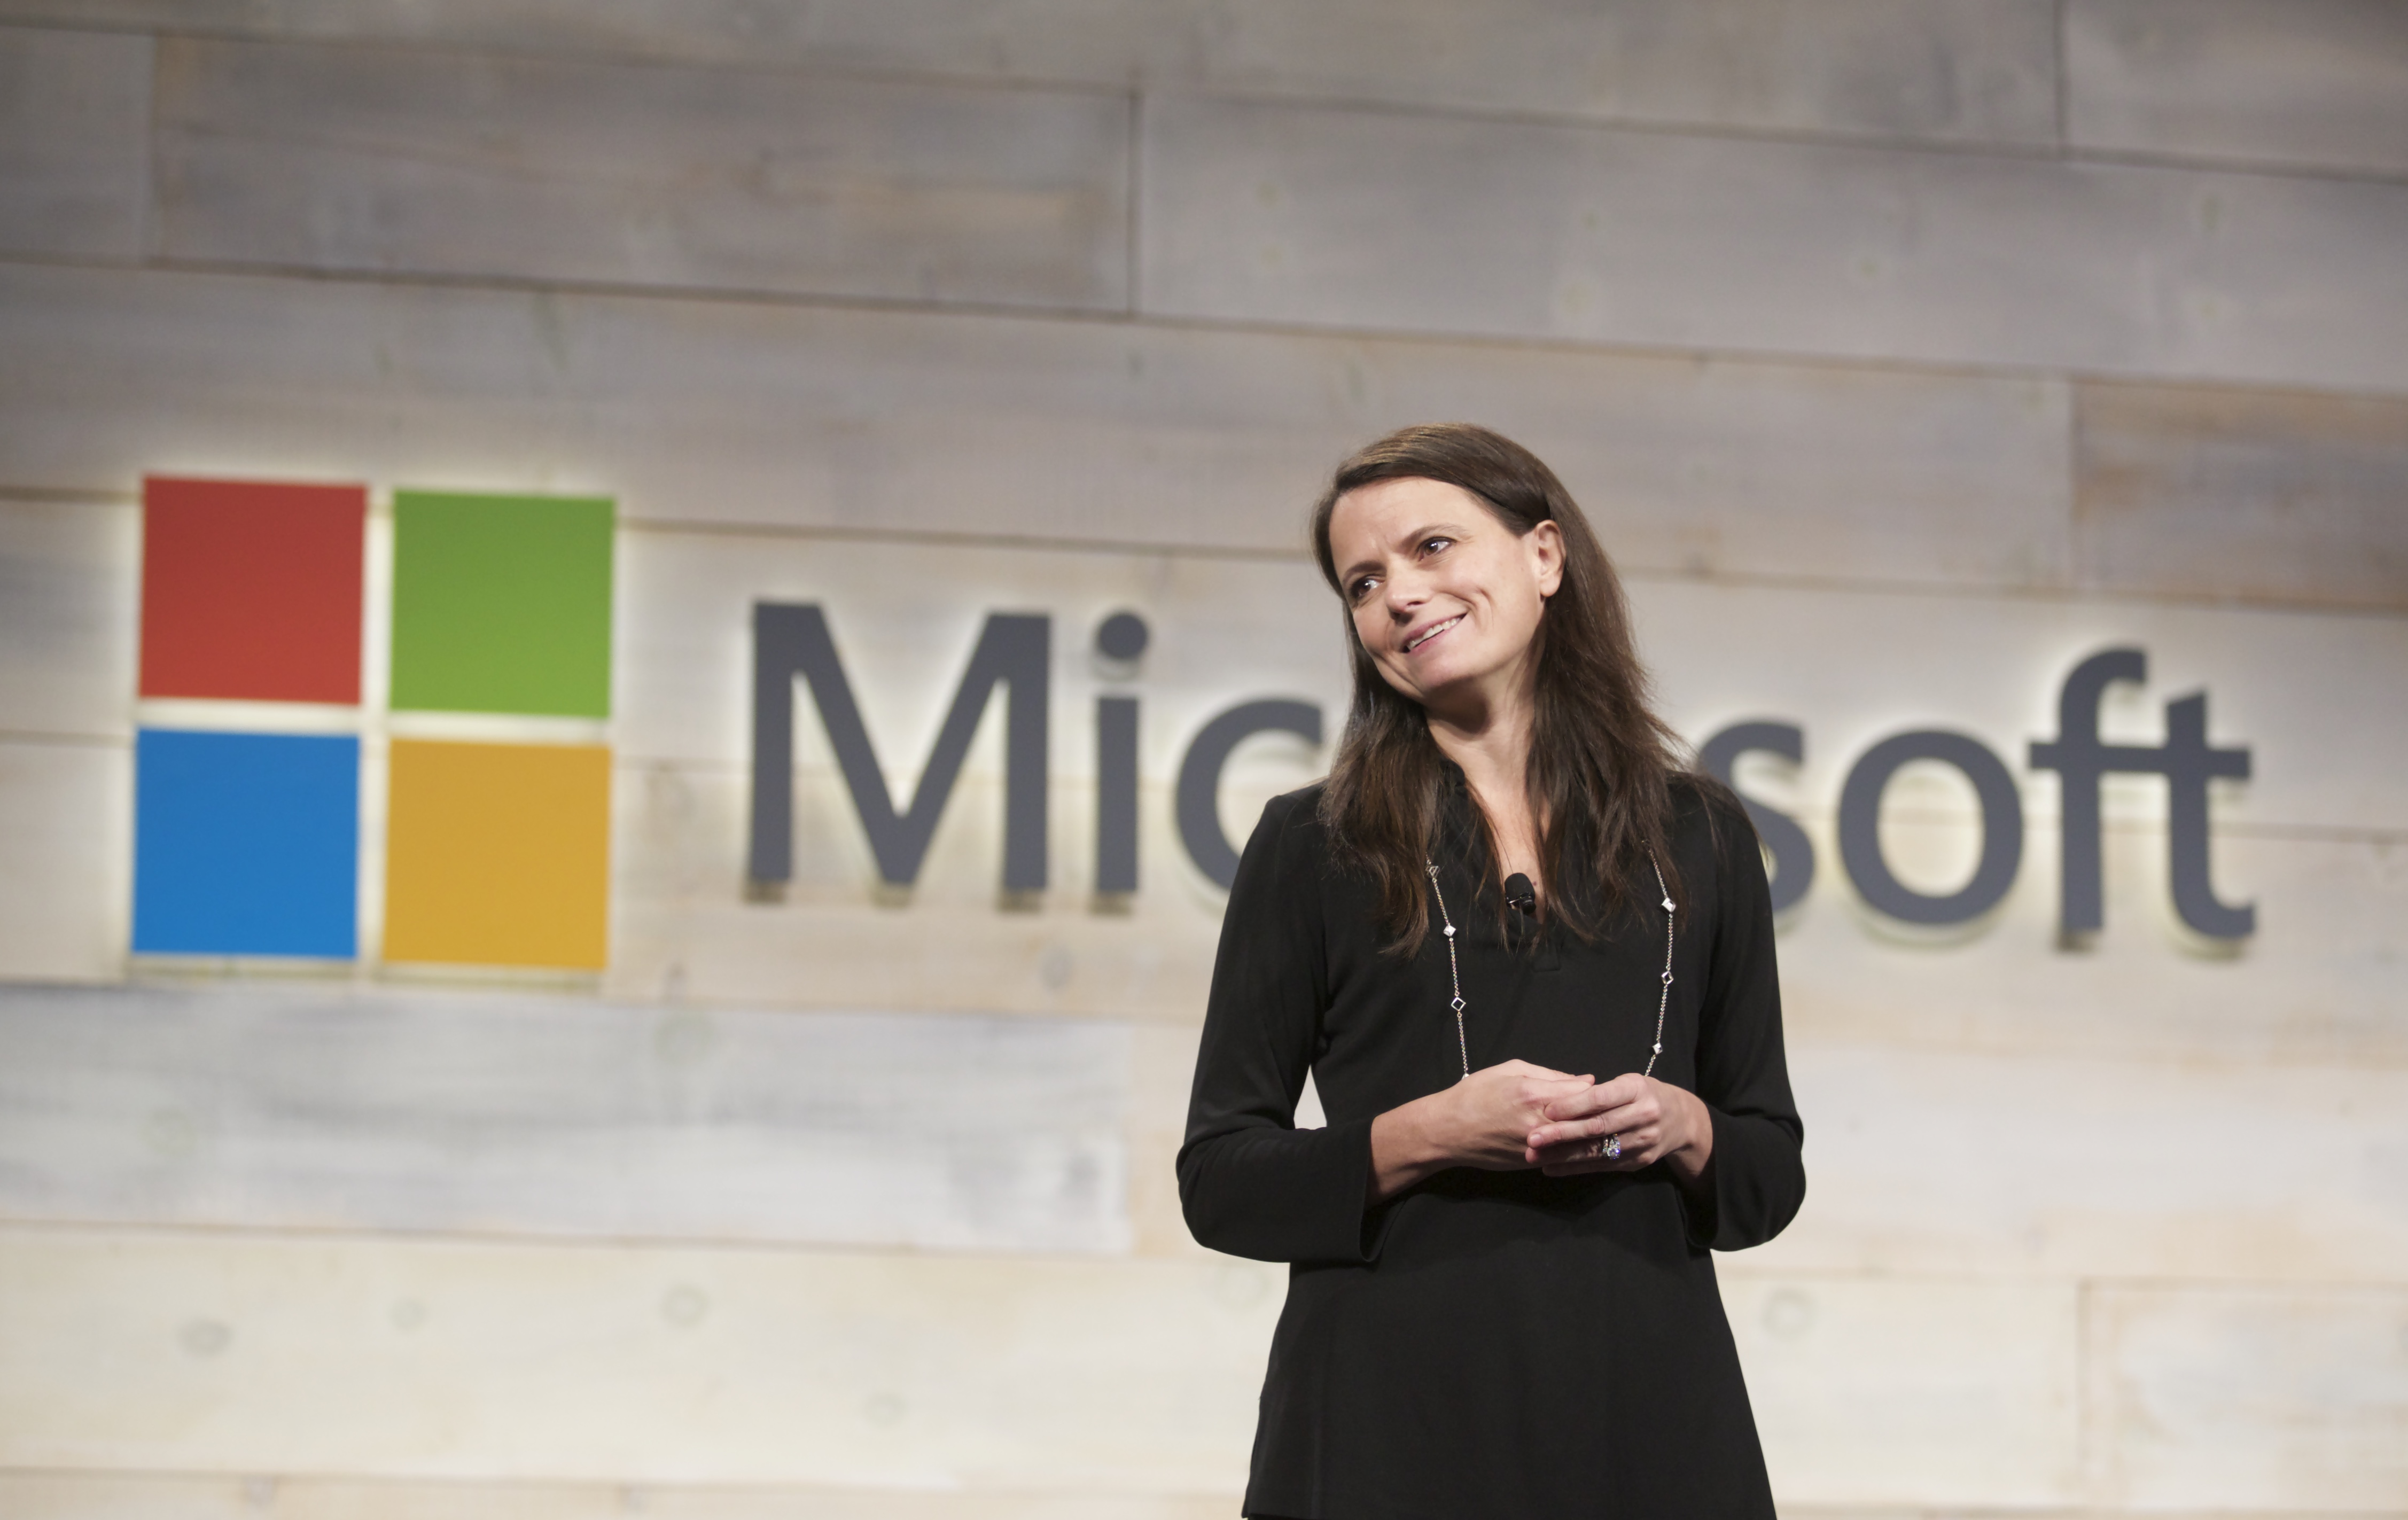 Microsoft Holds Annual Shareholder Meeting